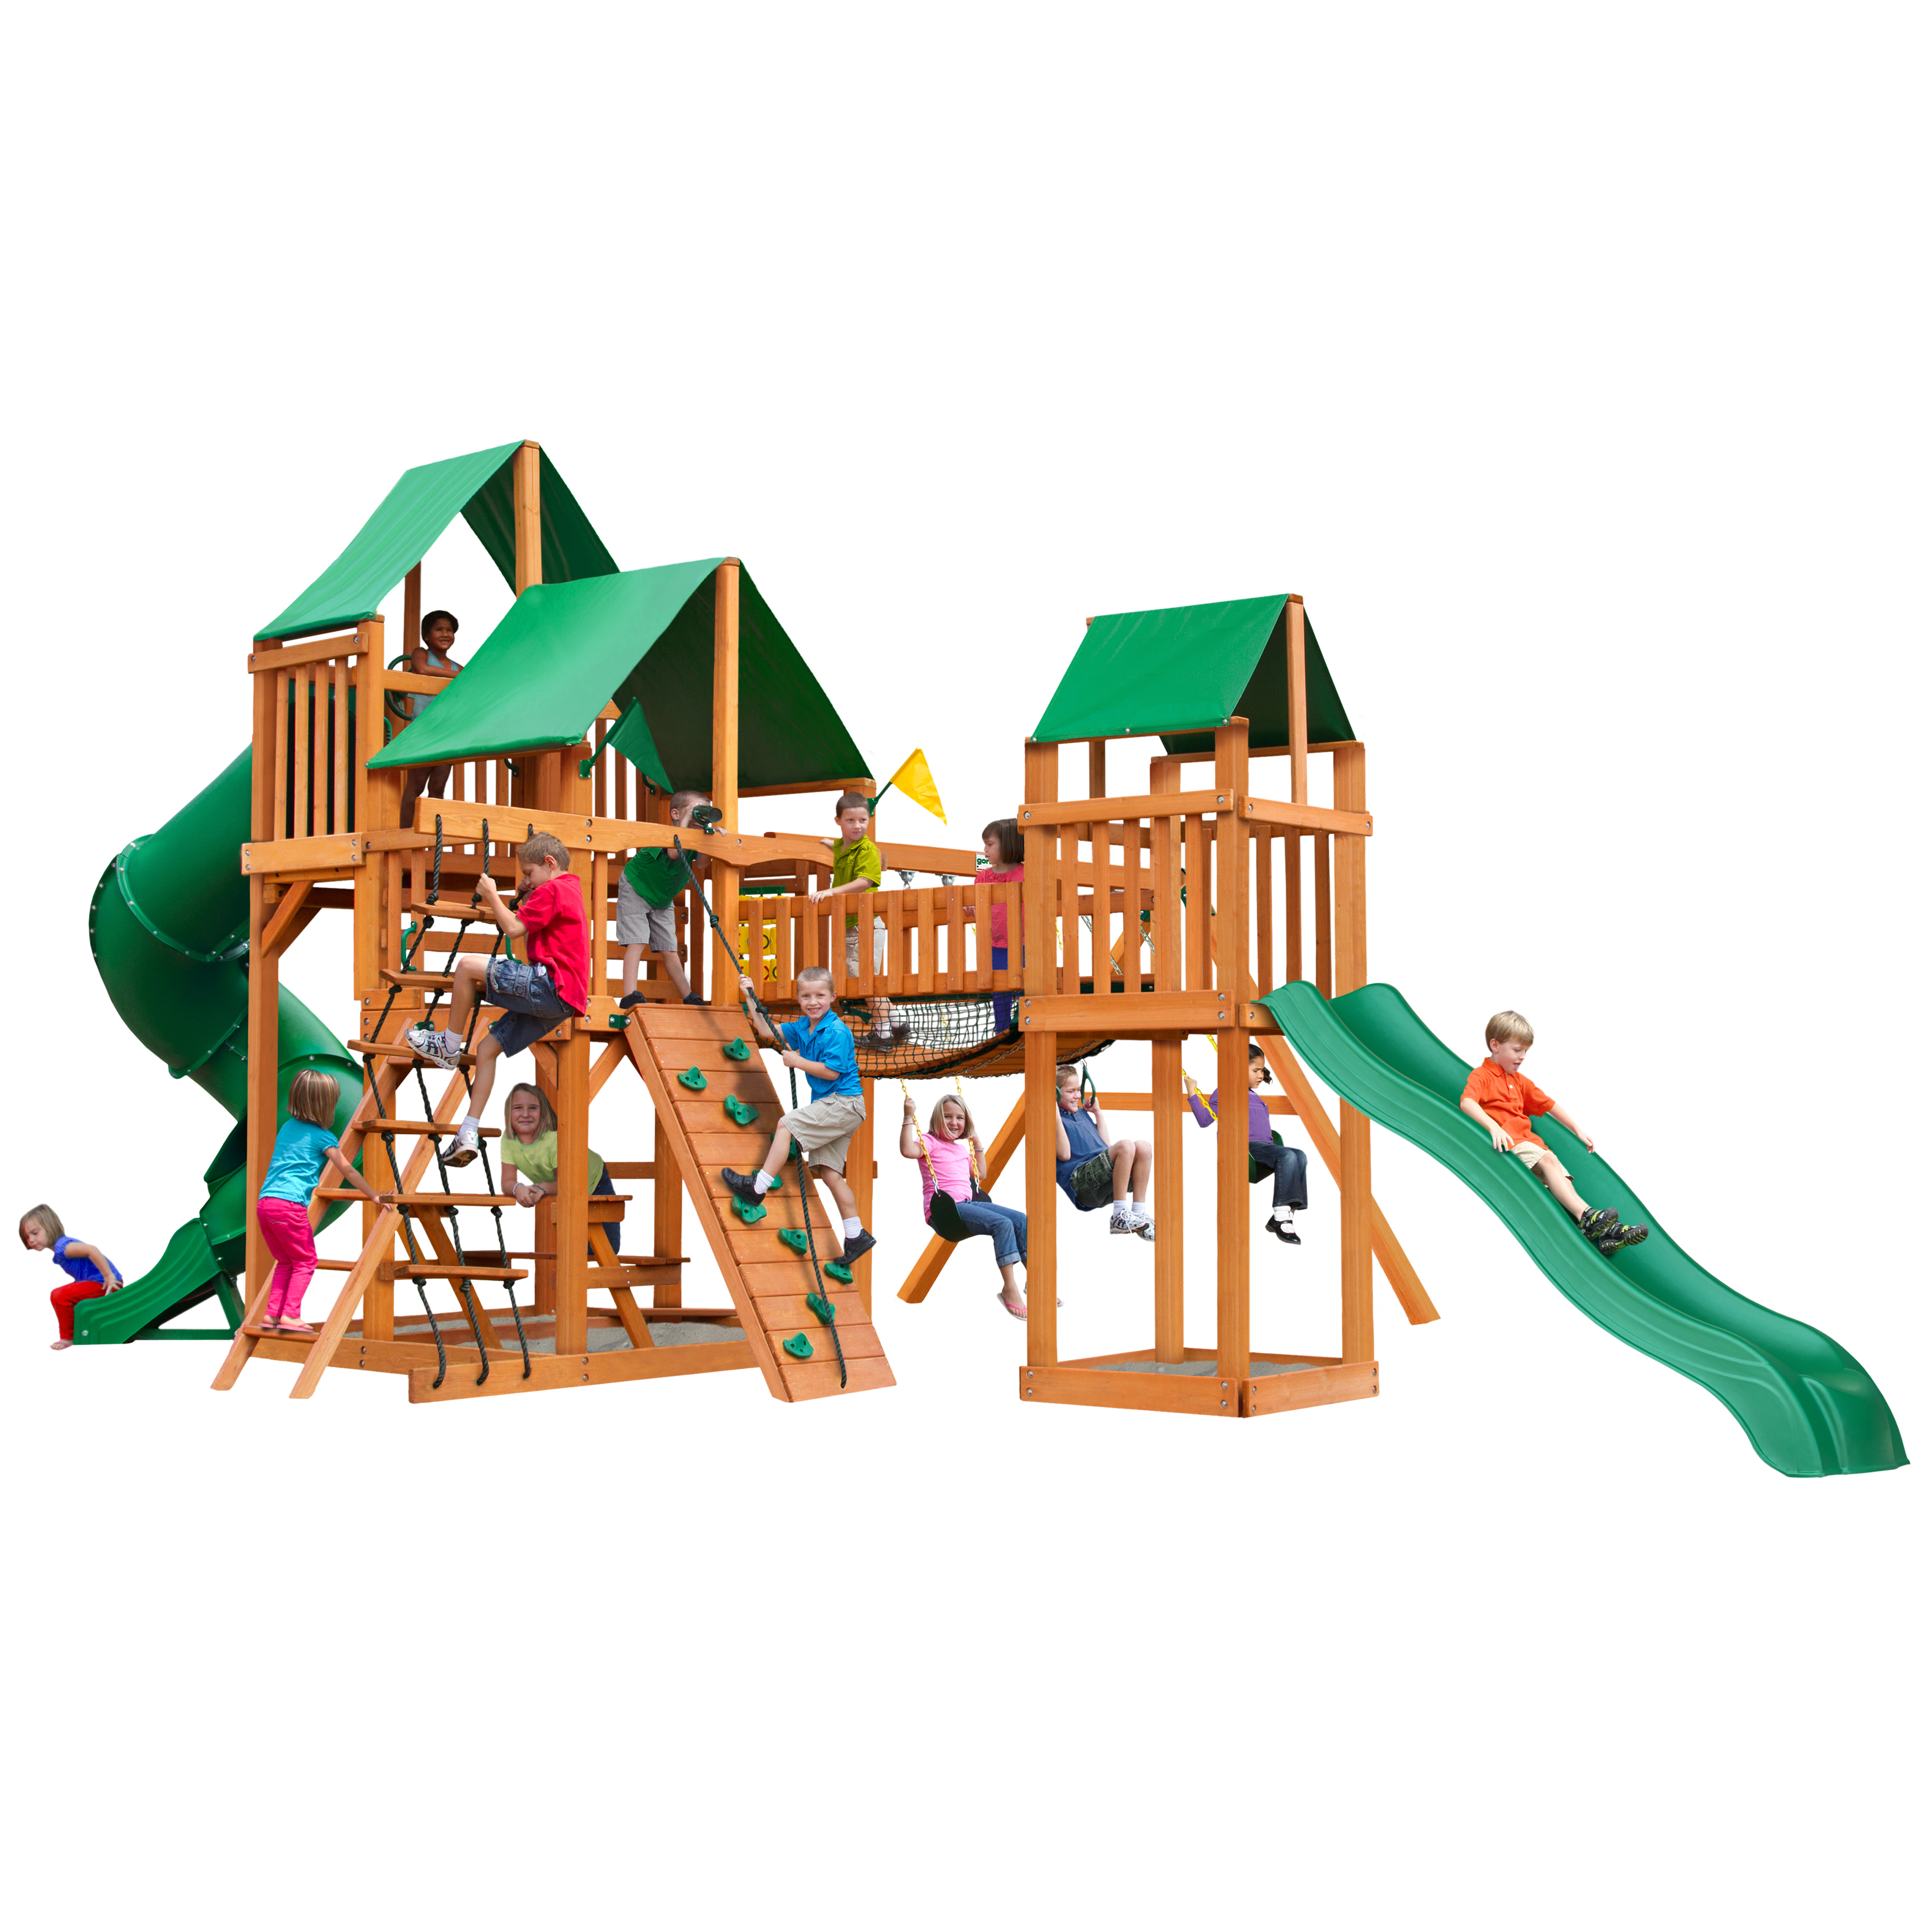 Gorilla Playsets Treasure Trove I Wooden Swing Set with Green Vinyl Canopy, 2 Slides, and Clatter Bridge and Tower